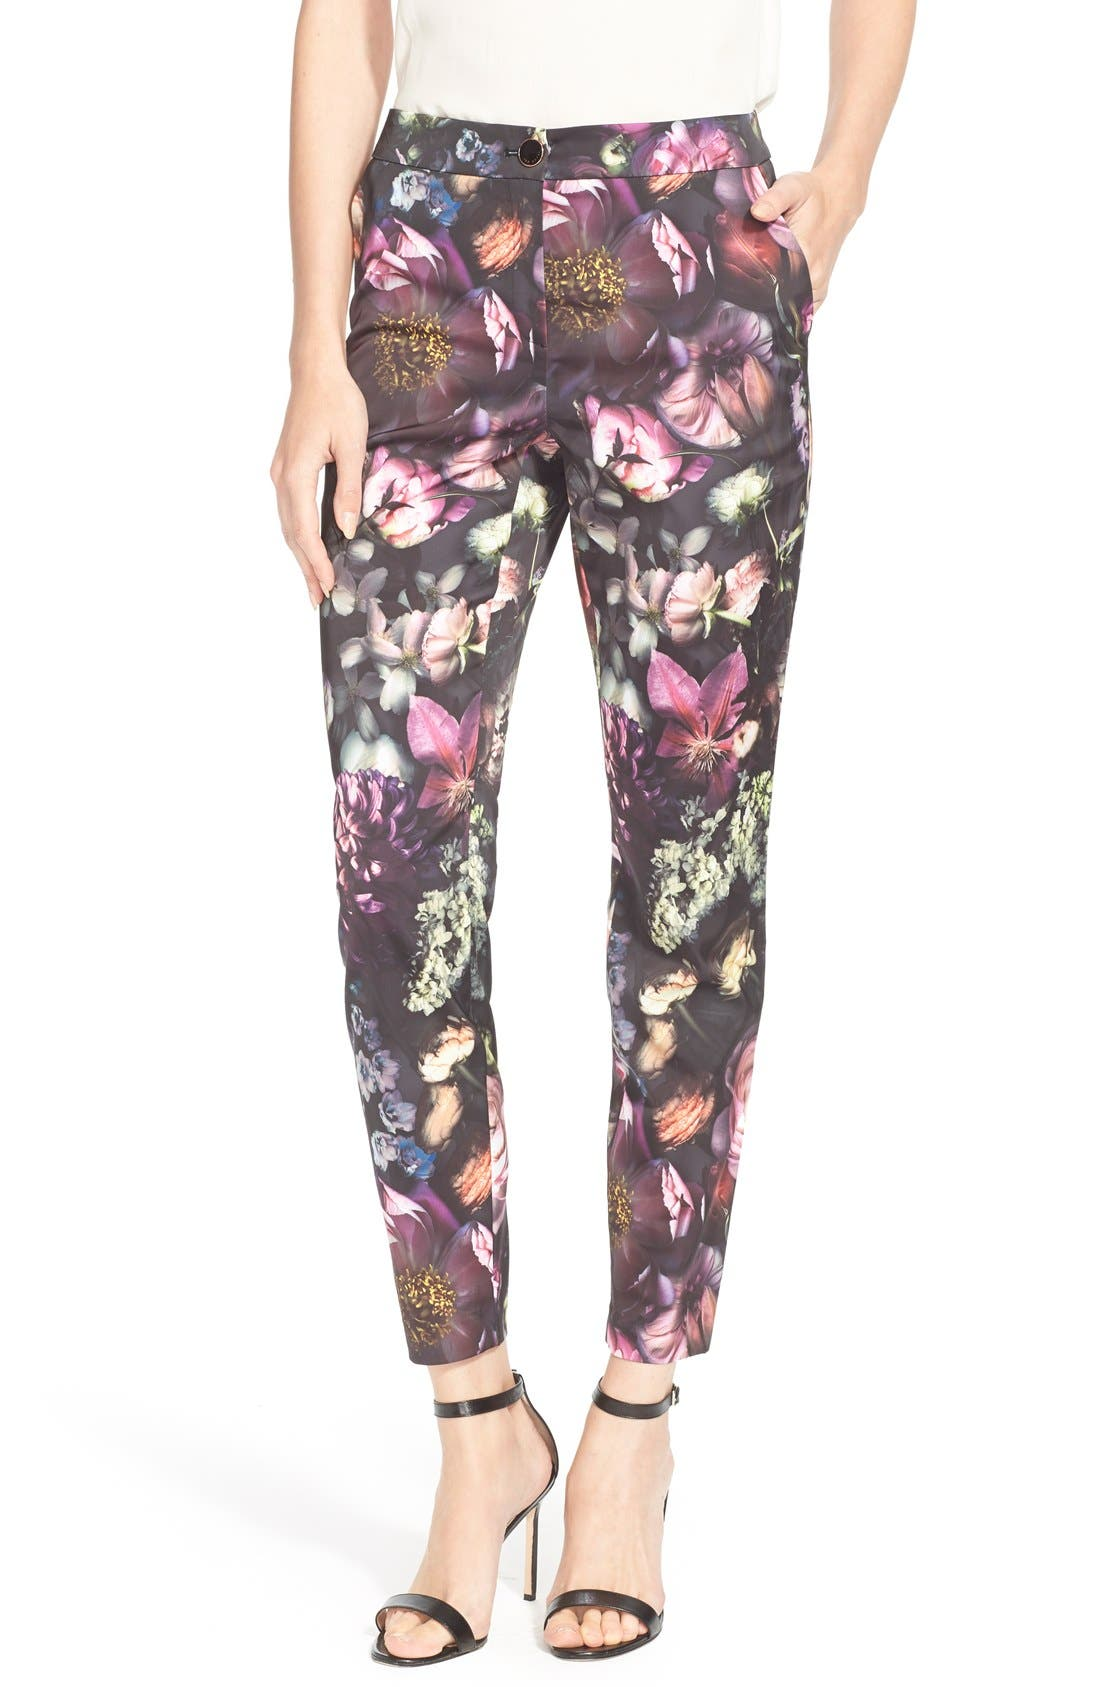 TED BAKER LONDON 'Anuja' Floral Print Trousers, Main, color, 021